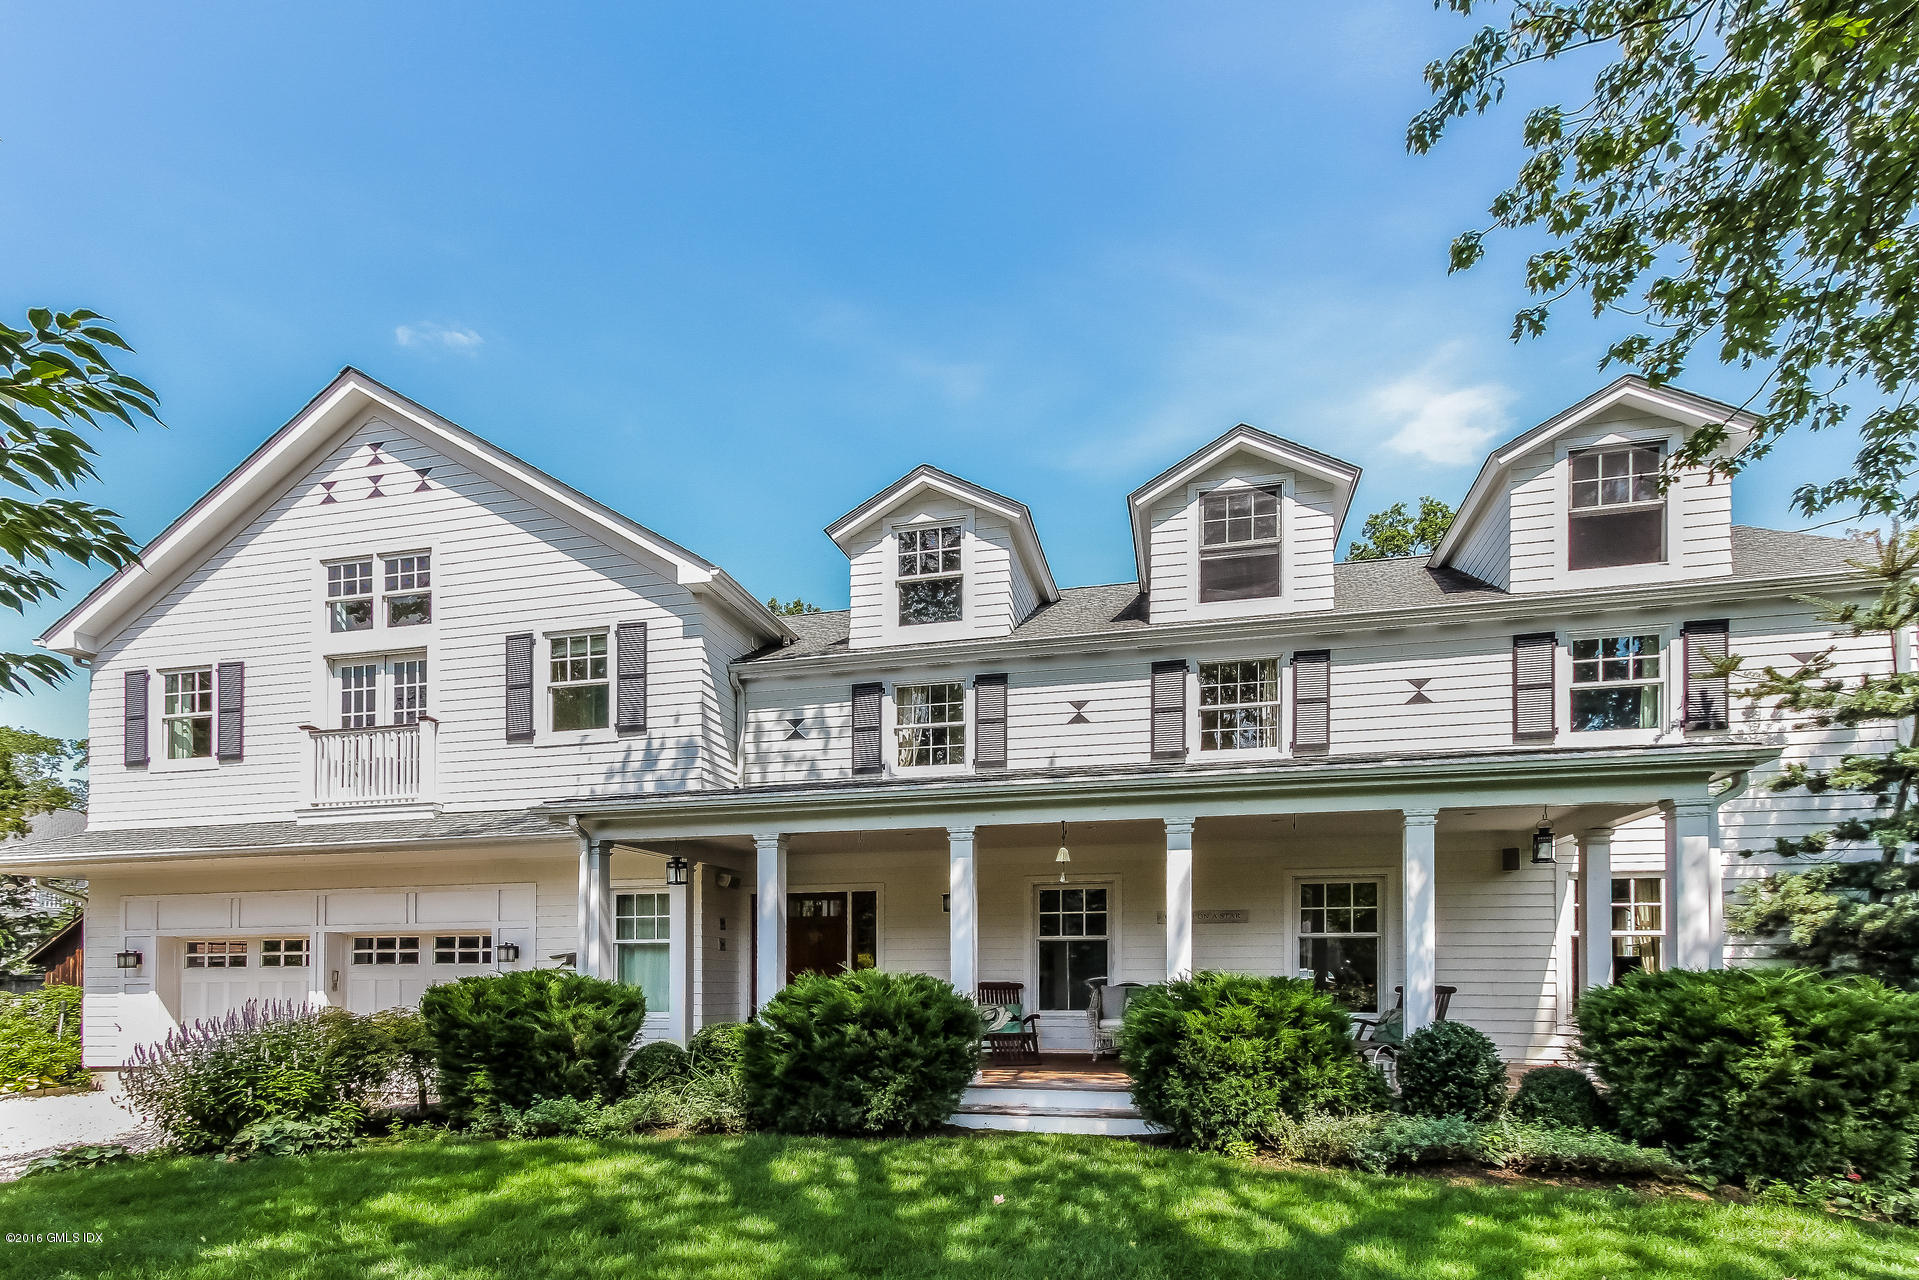 9 Grace Street,Old Greenwich,Connecticut 06870,6 Bedrooms Bedrooms,4 BathroomsBathrooms,Single family,Grace,105367